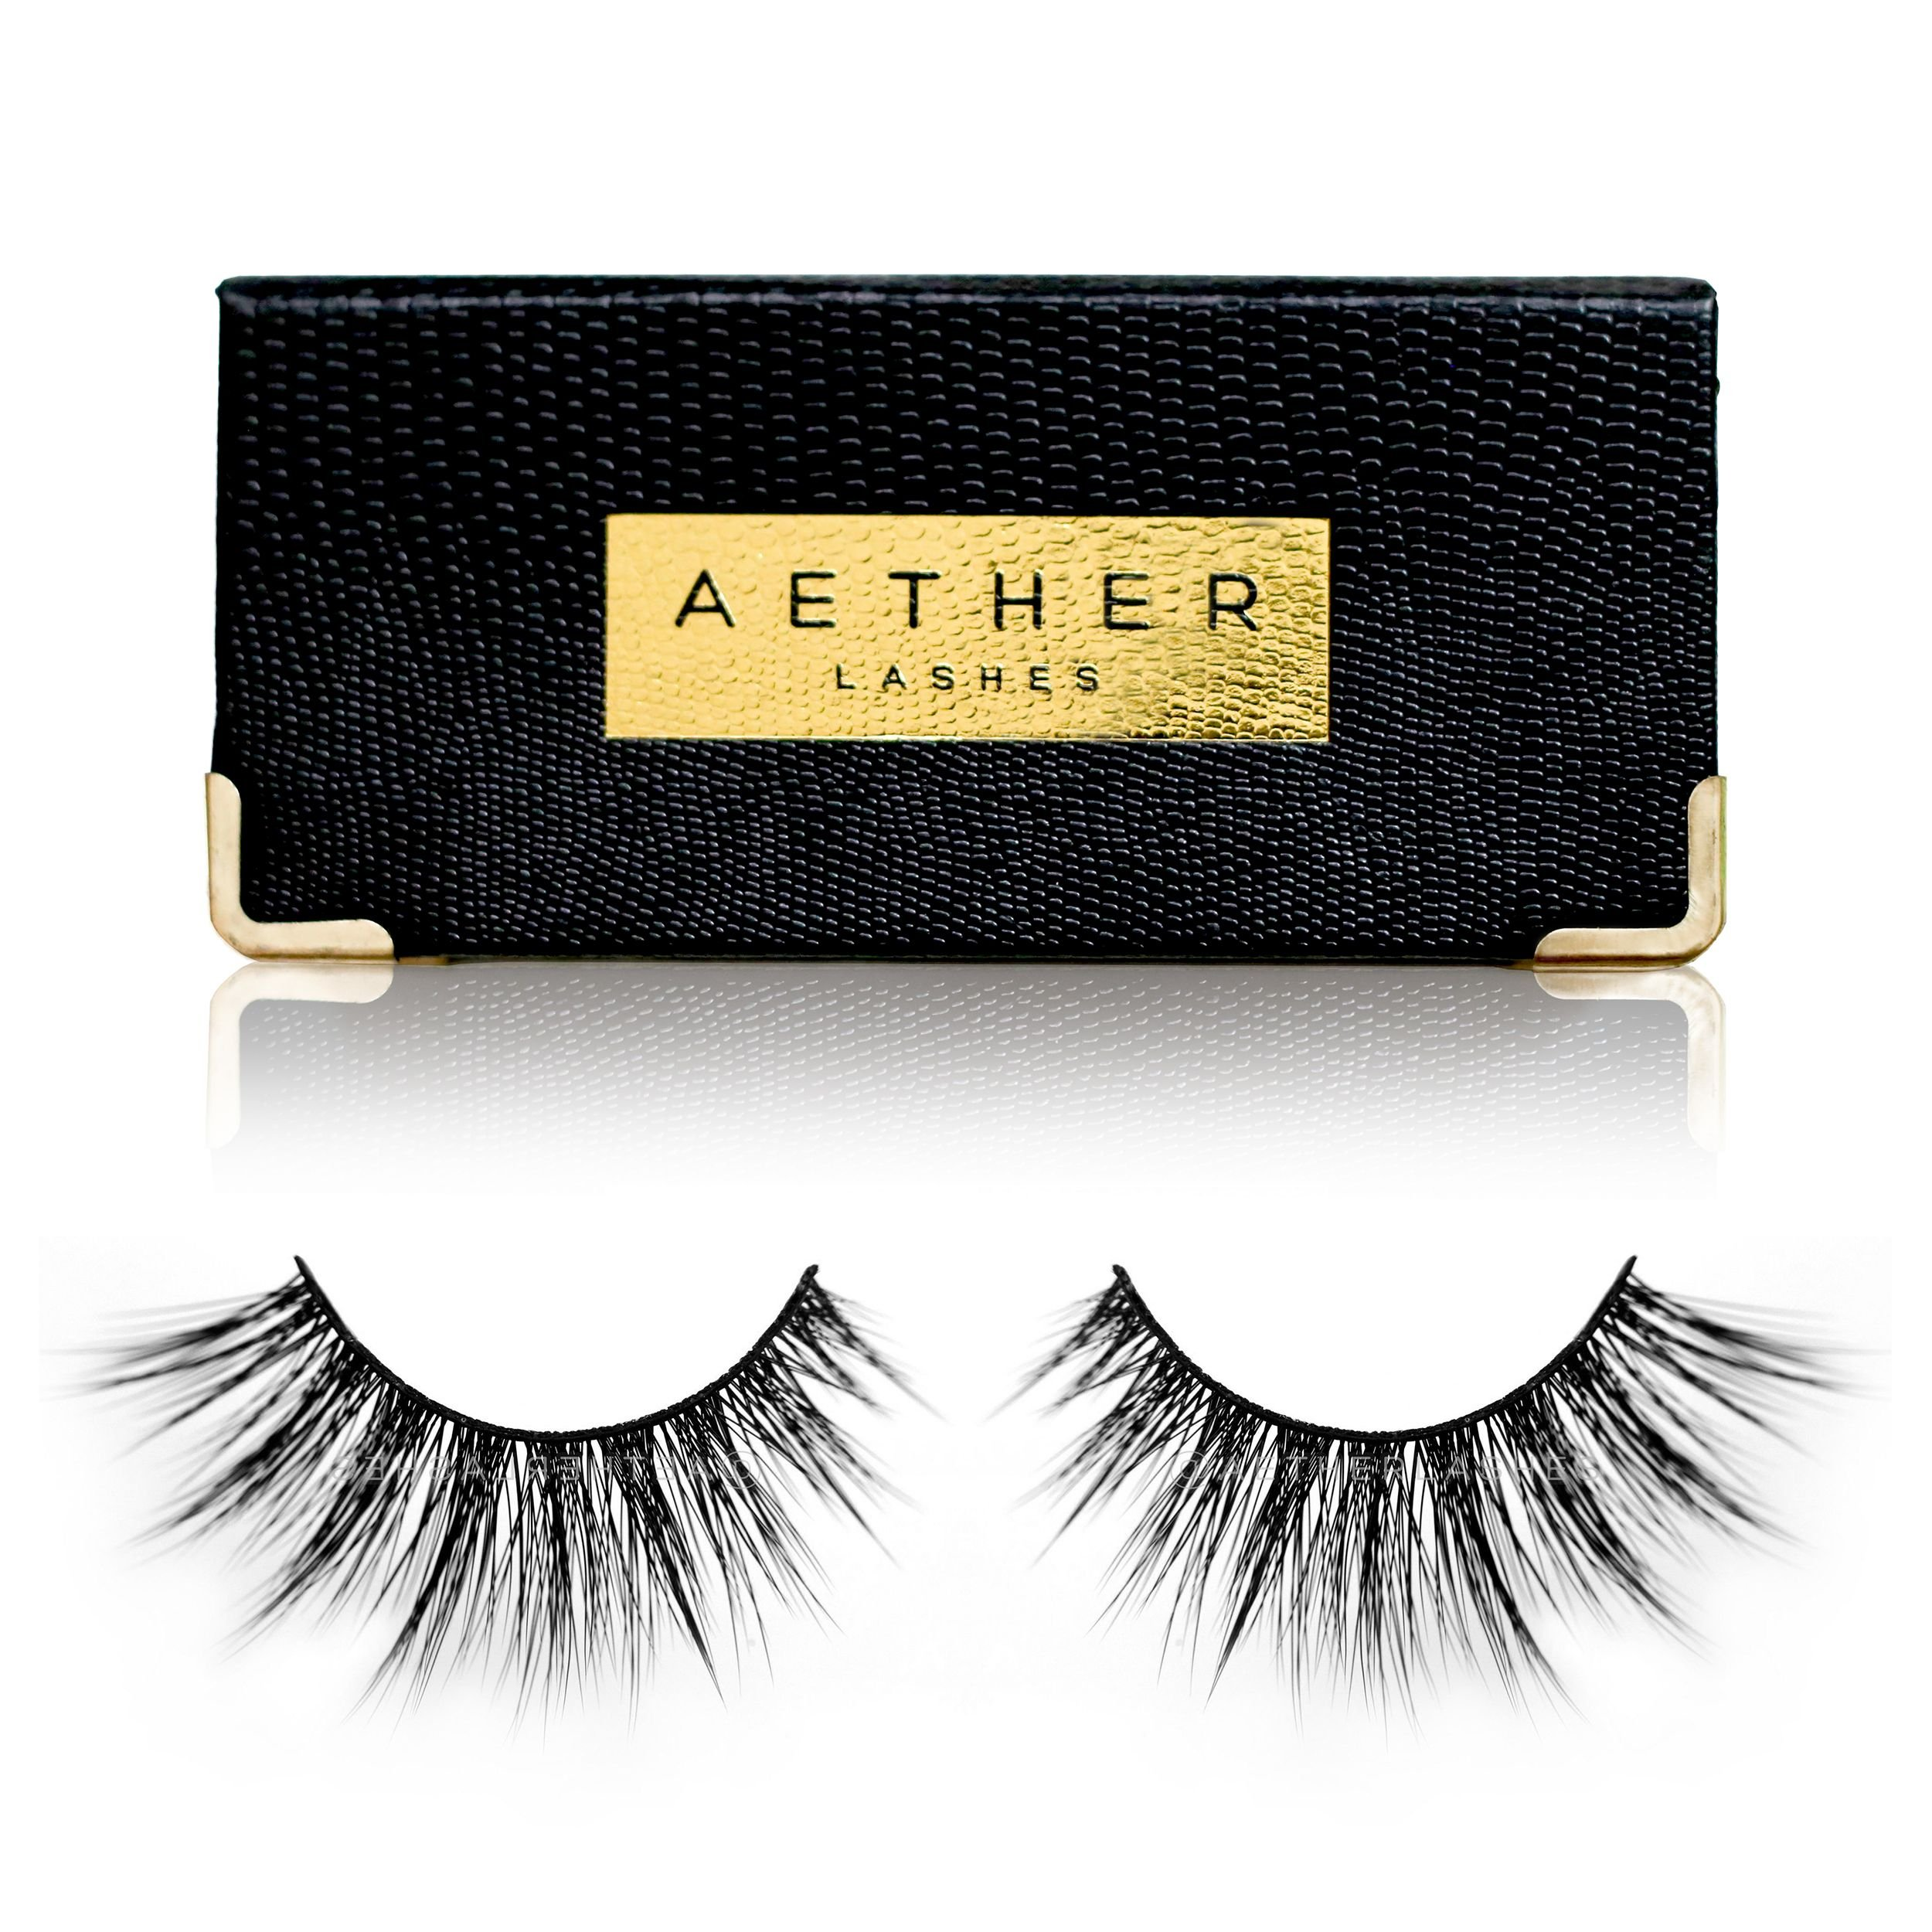 b9ff07c5a97 Amazon.com : Aether Lashes Reusable Cruelty-Free Ultra Soft Lifelike & Natural  False Fake Eyelashes (Belladonna) : Beauty